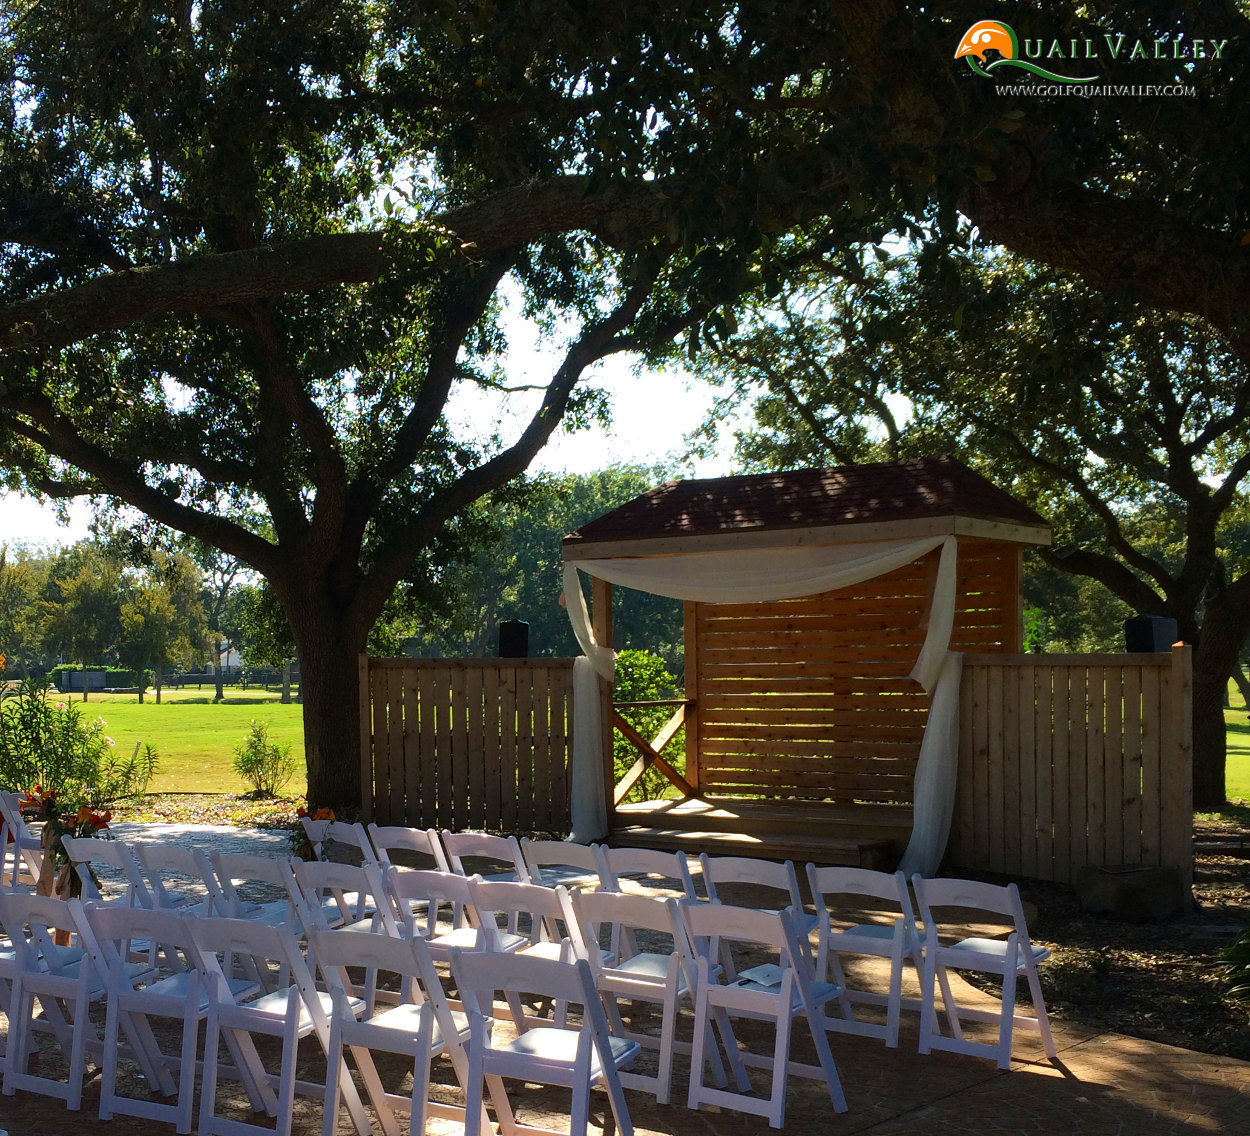 Outdoor Weddings at Quail Valley